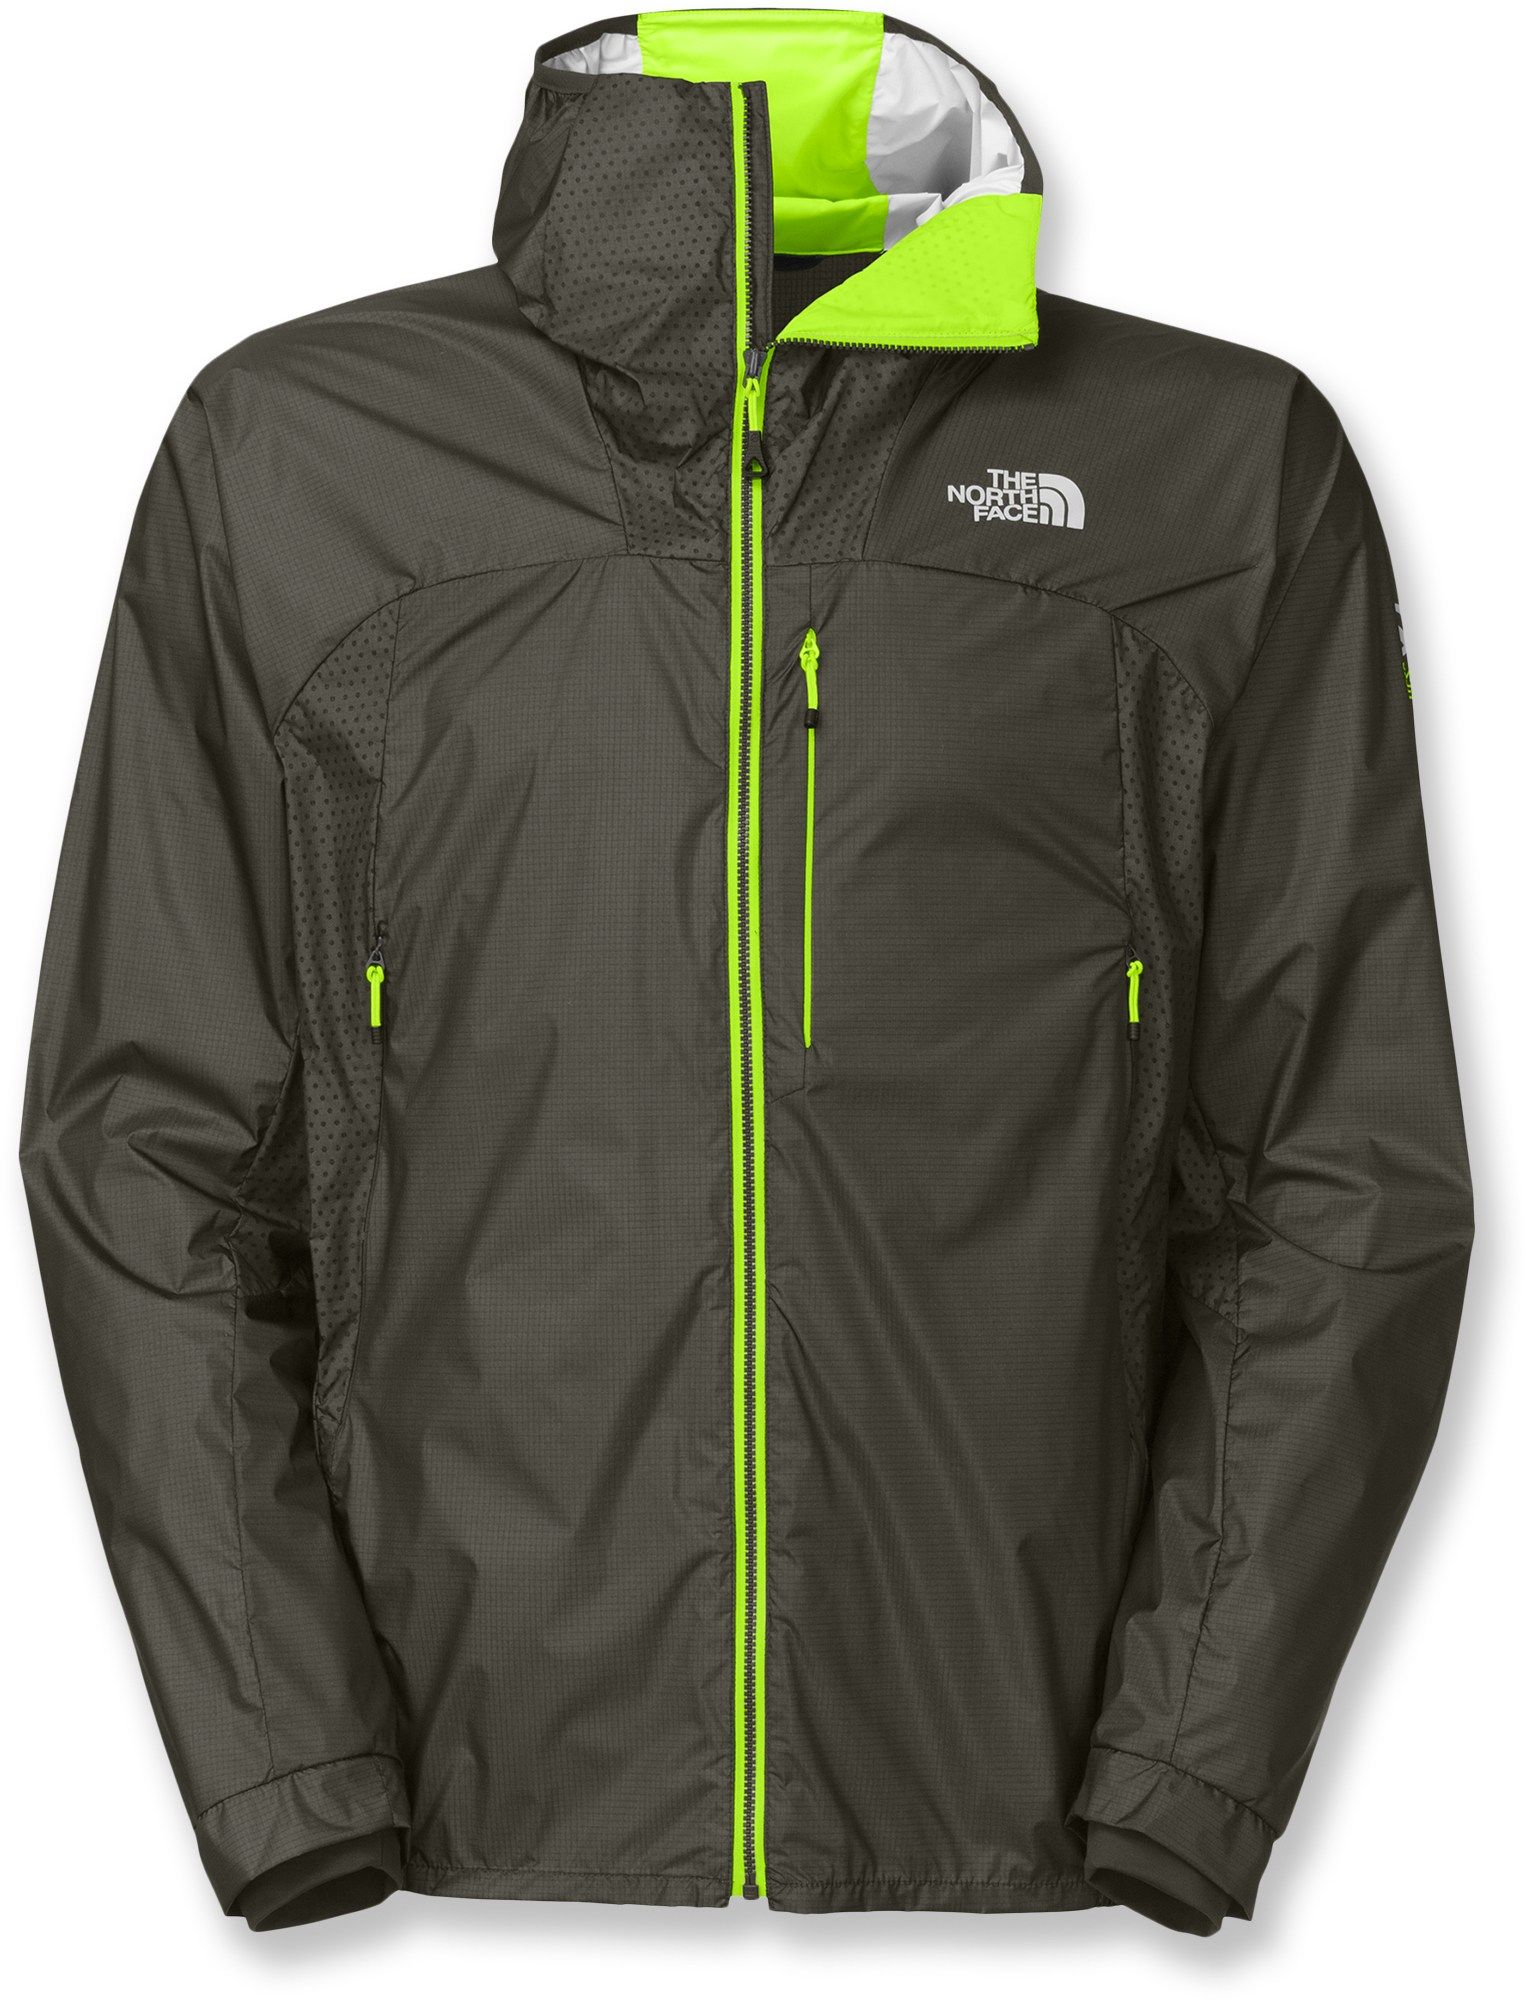 64bd4a0fe The North Face Male Defender Jacket - Men's | *Apparel & Accessories ...